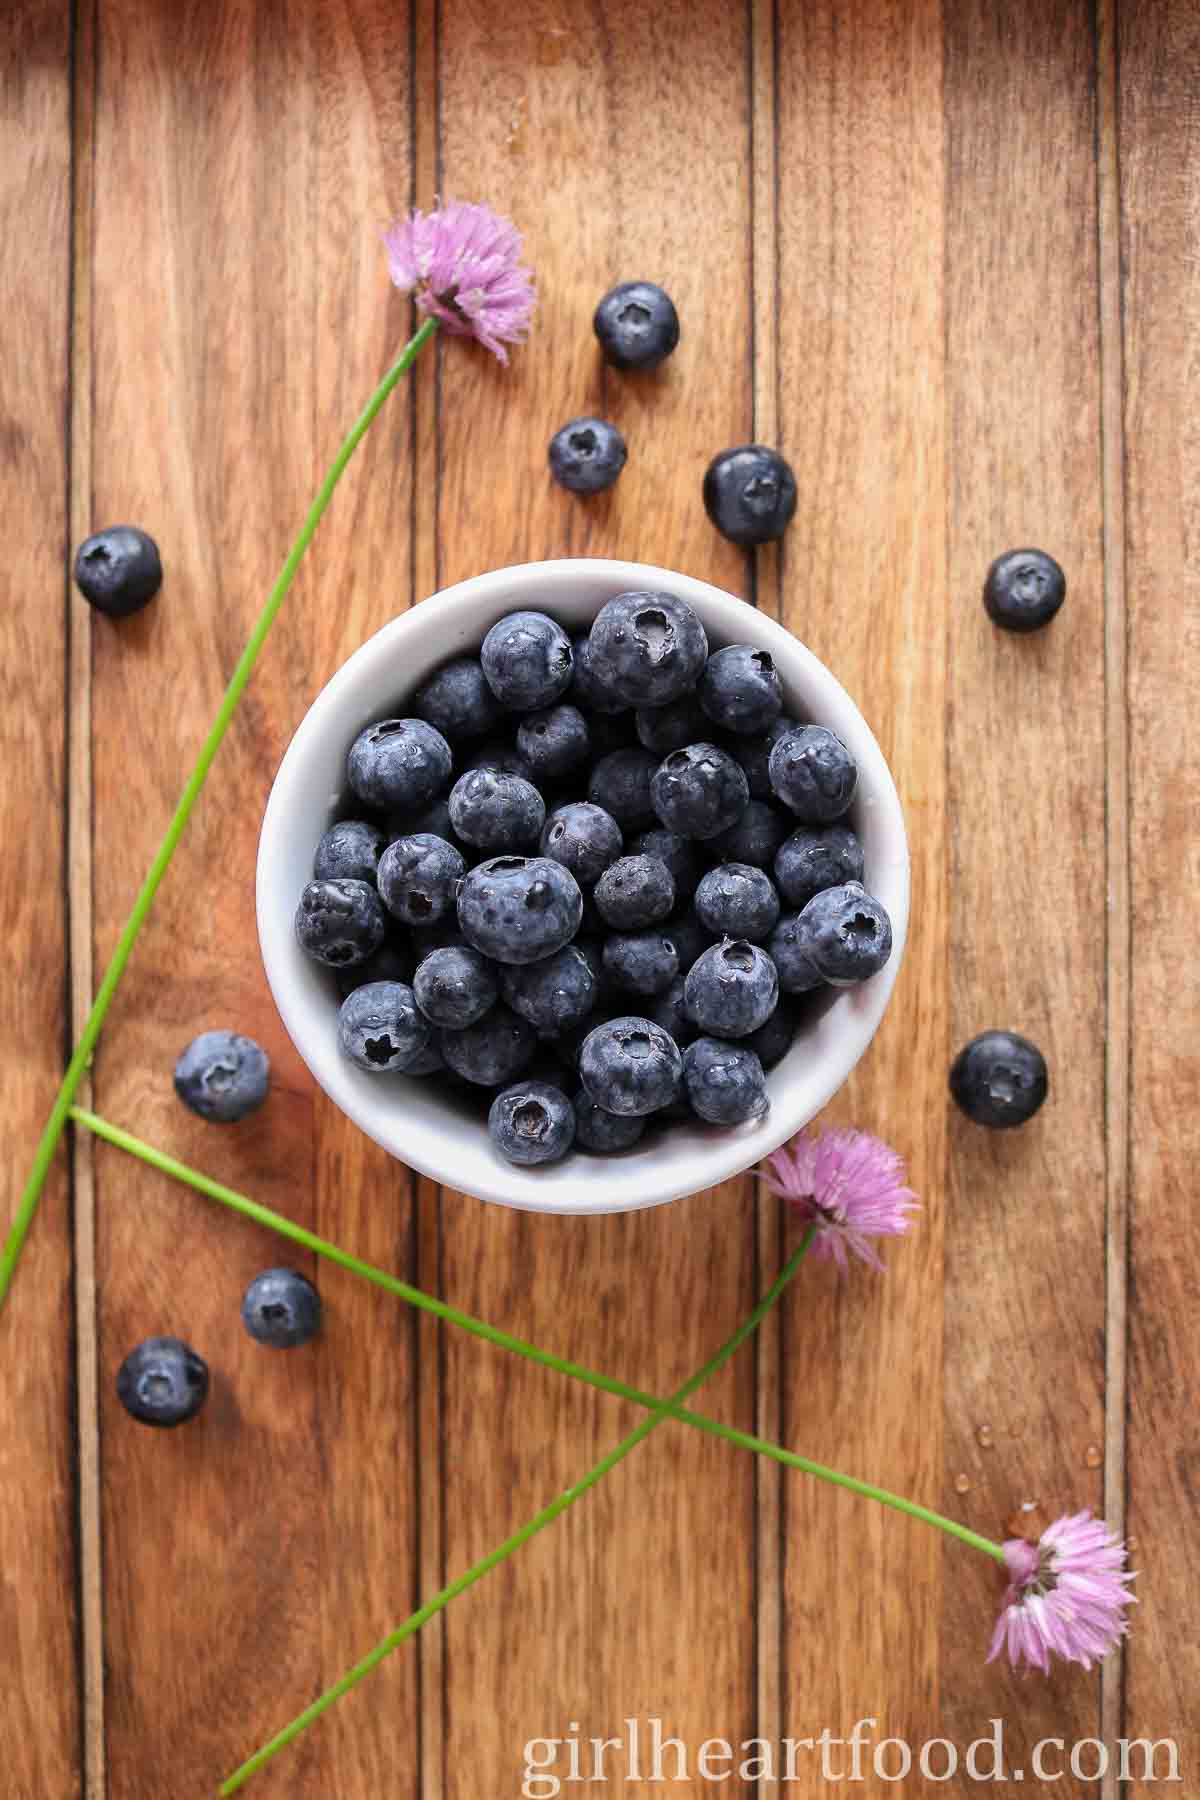 Small dish of fresh blueberries next to more blueberries and chives.